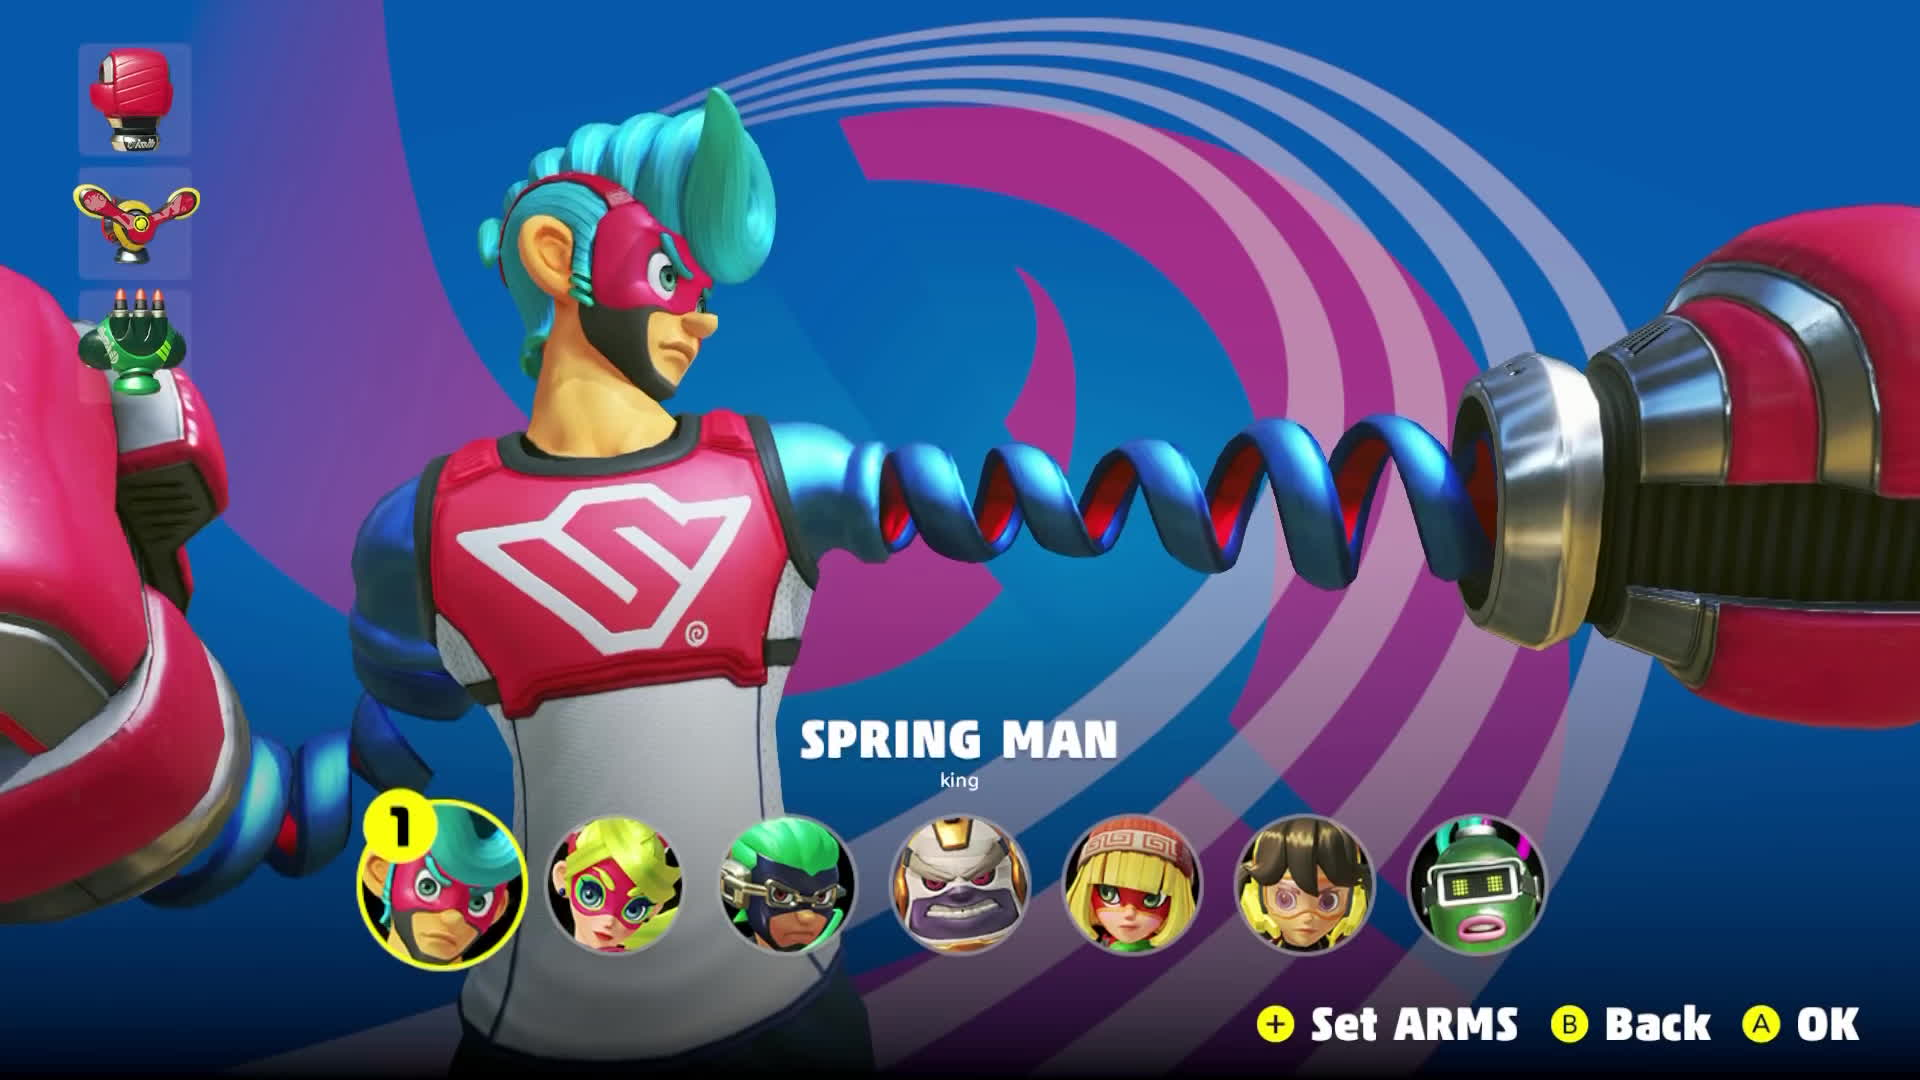 Nintendo Switch Arms Gifs Search Share On Homdor Spring Man Character Select